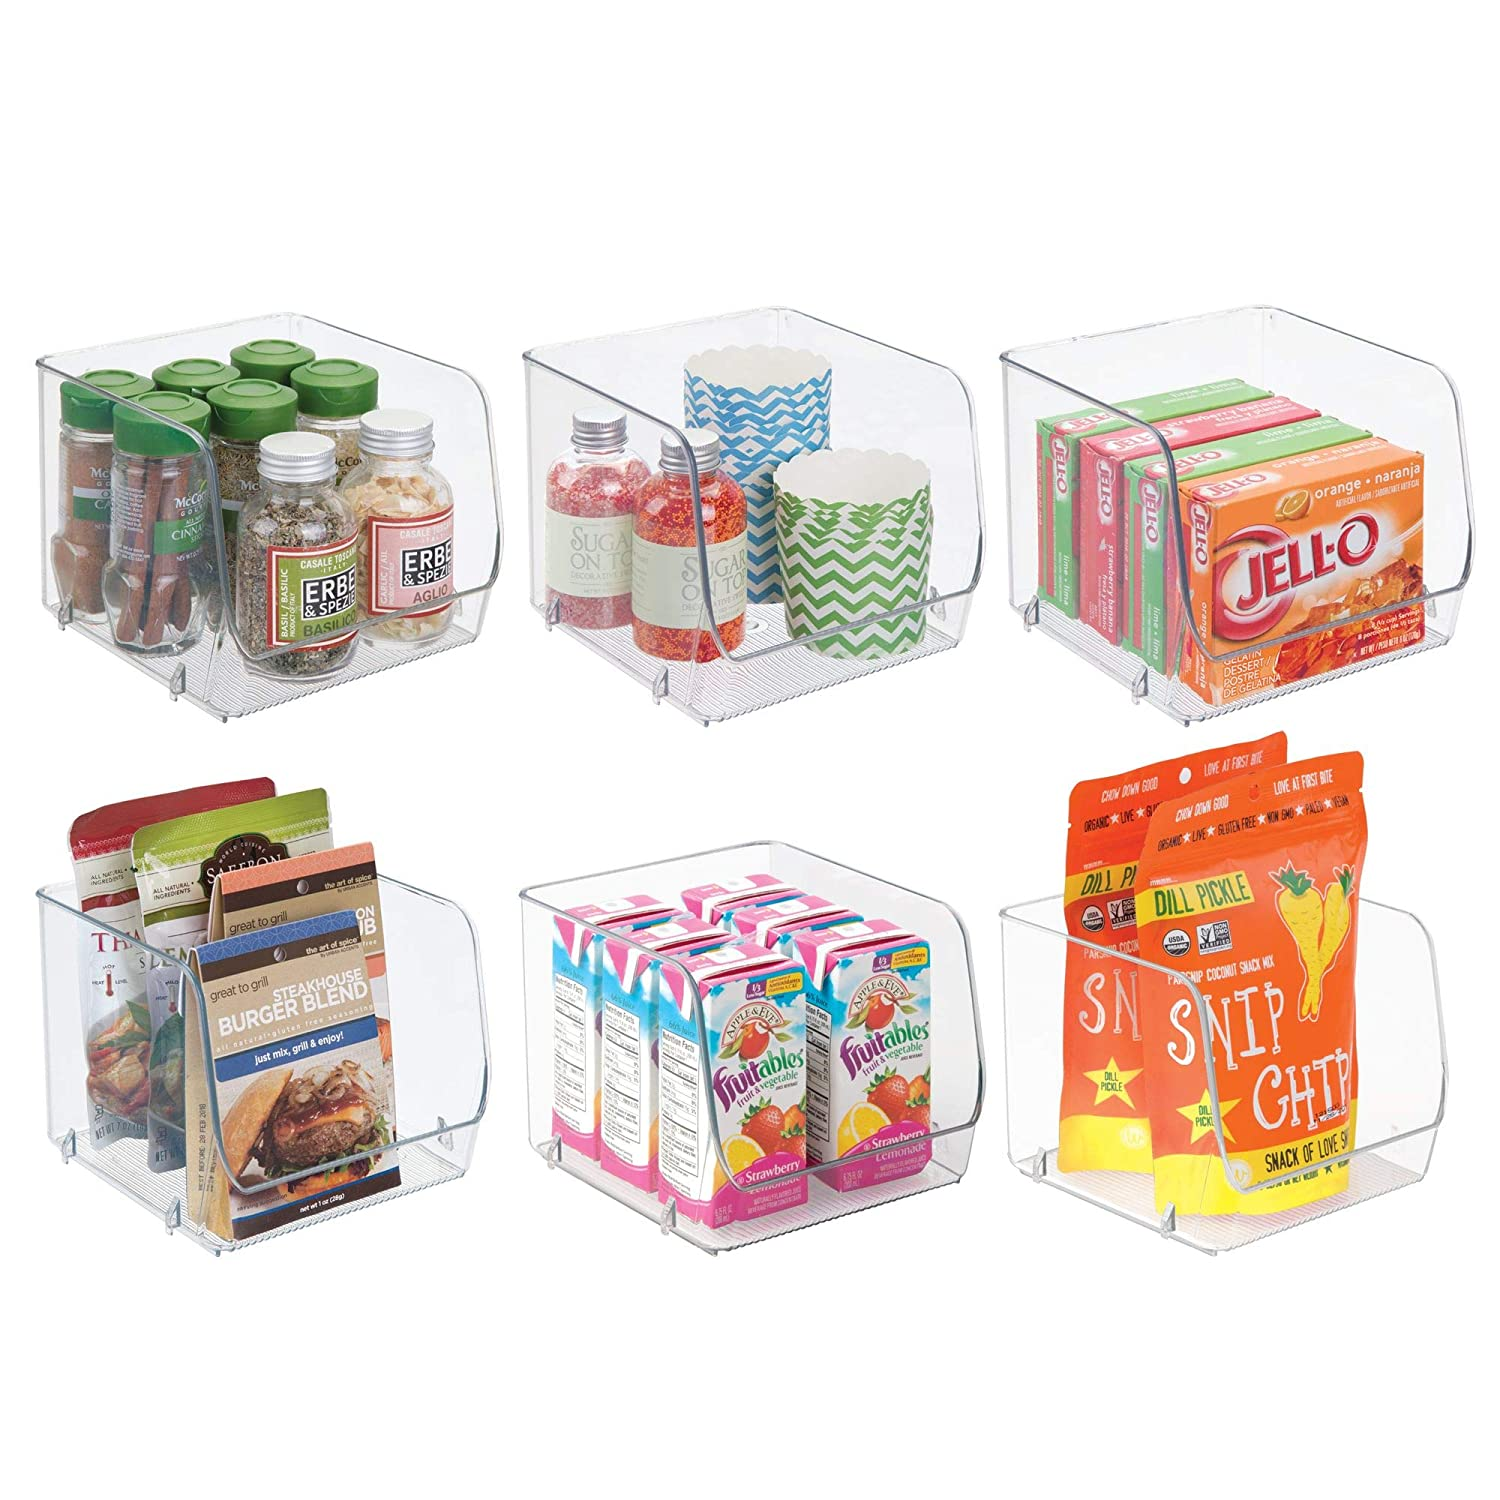 mDesign Stacking Organizer Bins for Kitchen, Pantry, Office, Bathroom - Pack of 2, Medium, Clear MetroDecor 1576MDK